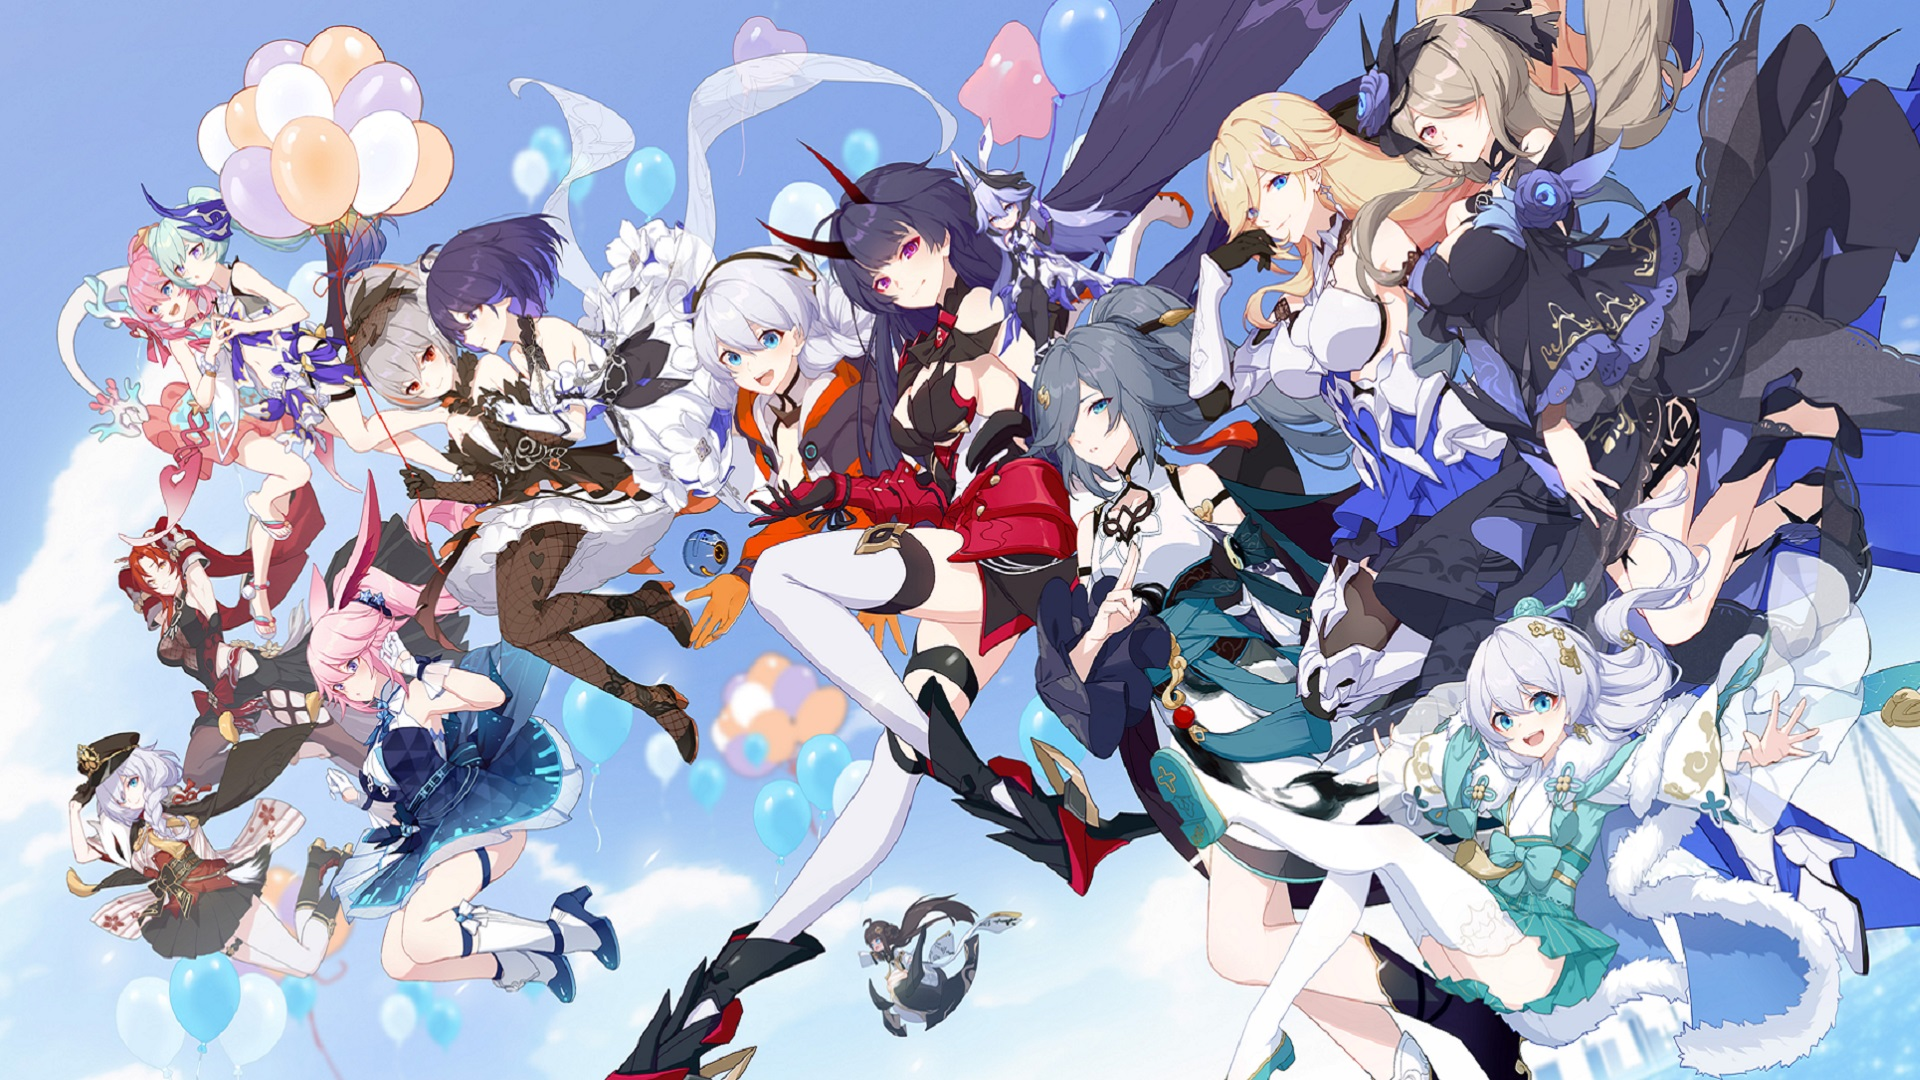 Honkai Impact characters – every Valkyrie listed